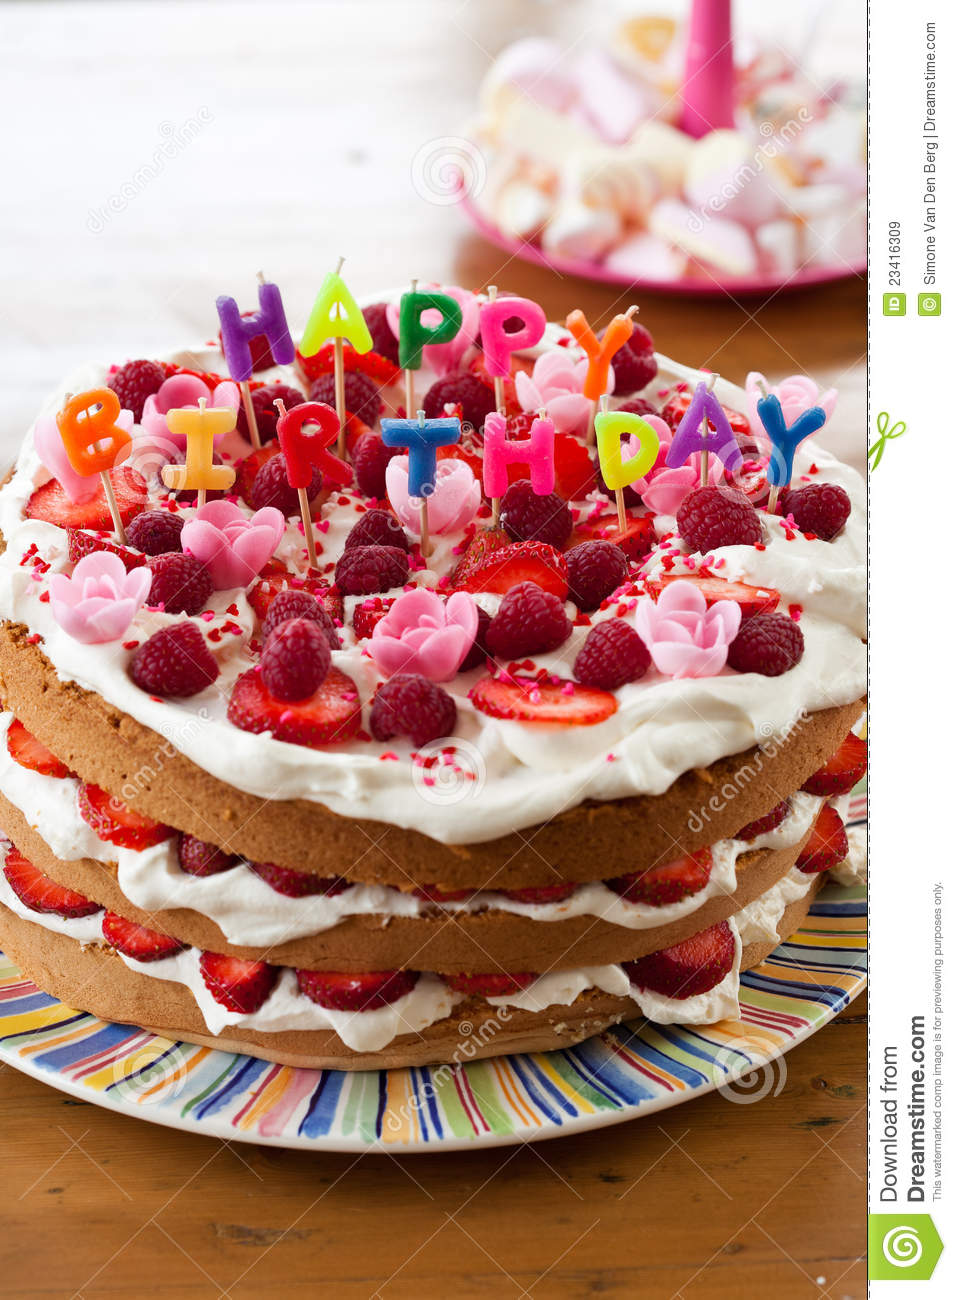 Delicious Cake With Candy Letters On Top That Read Happy Birthday